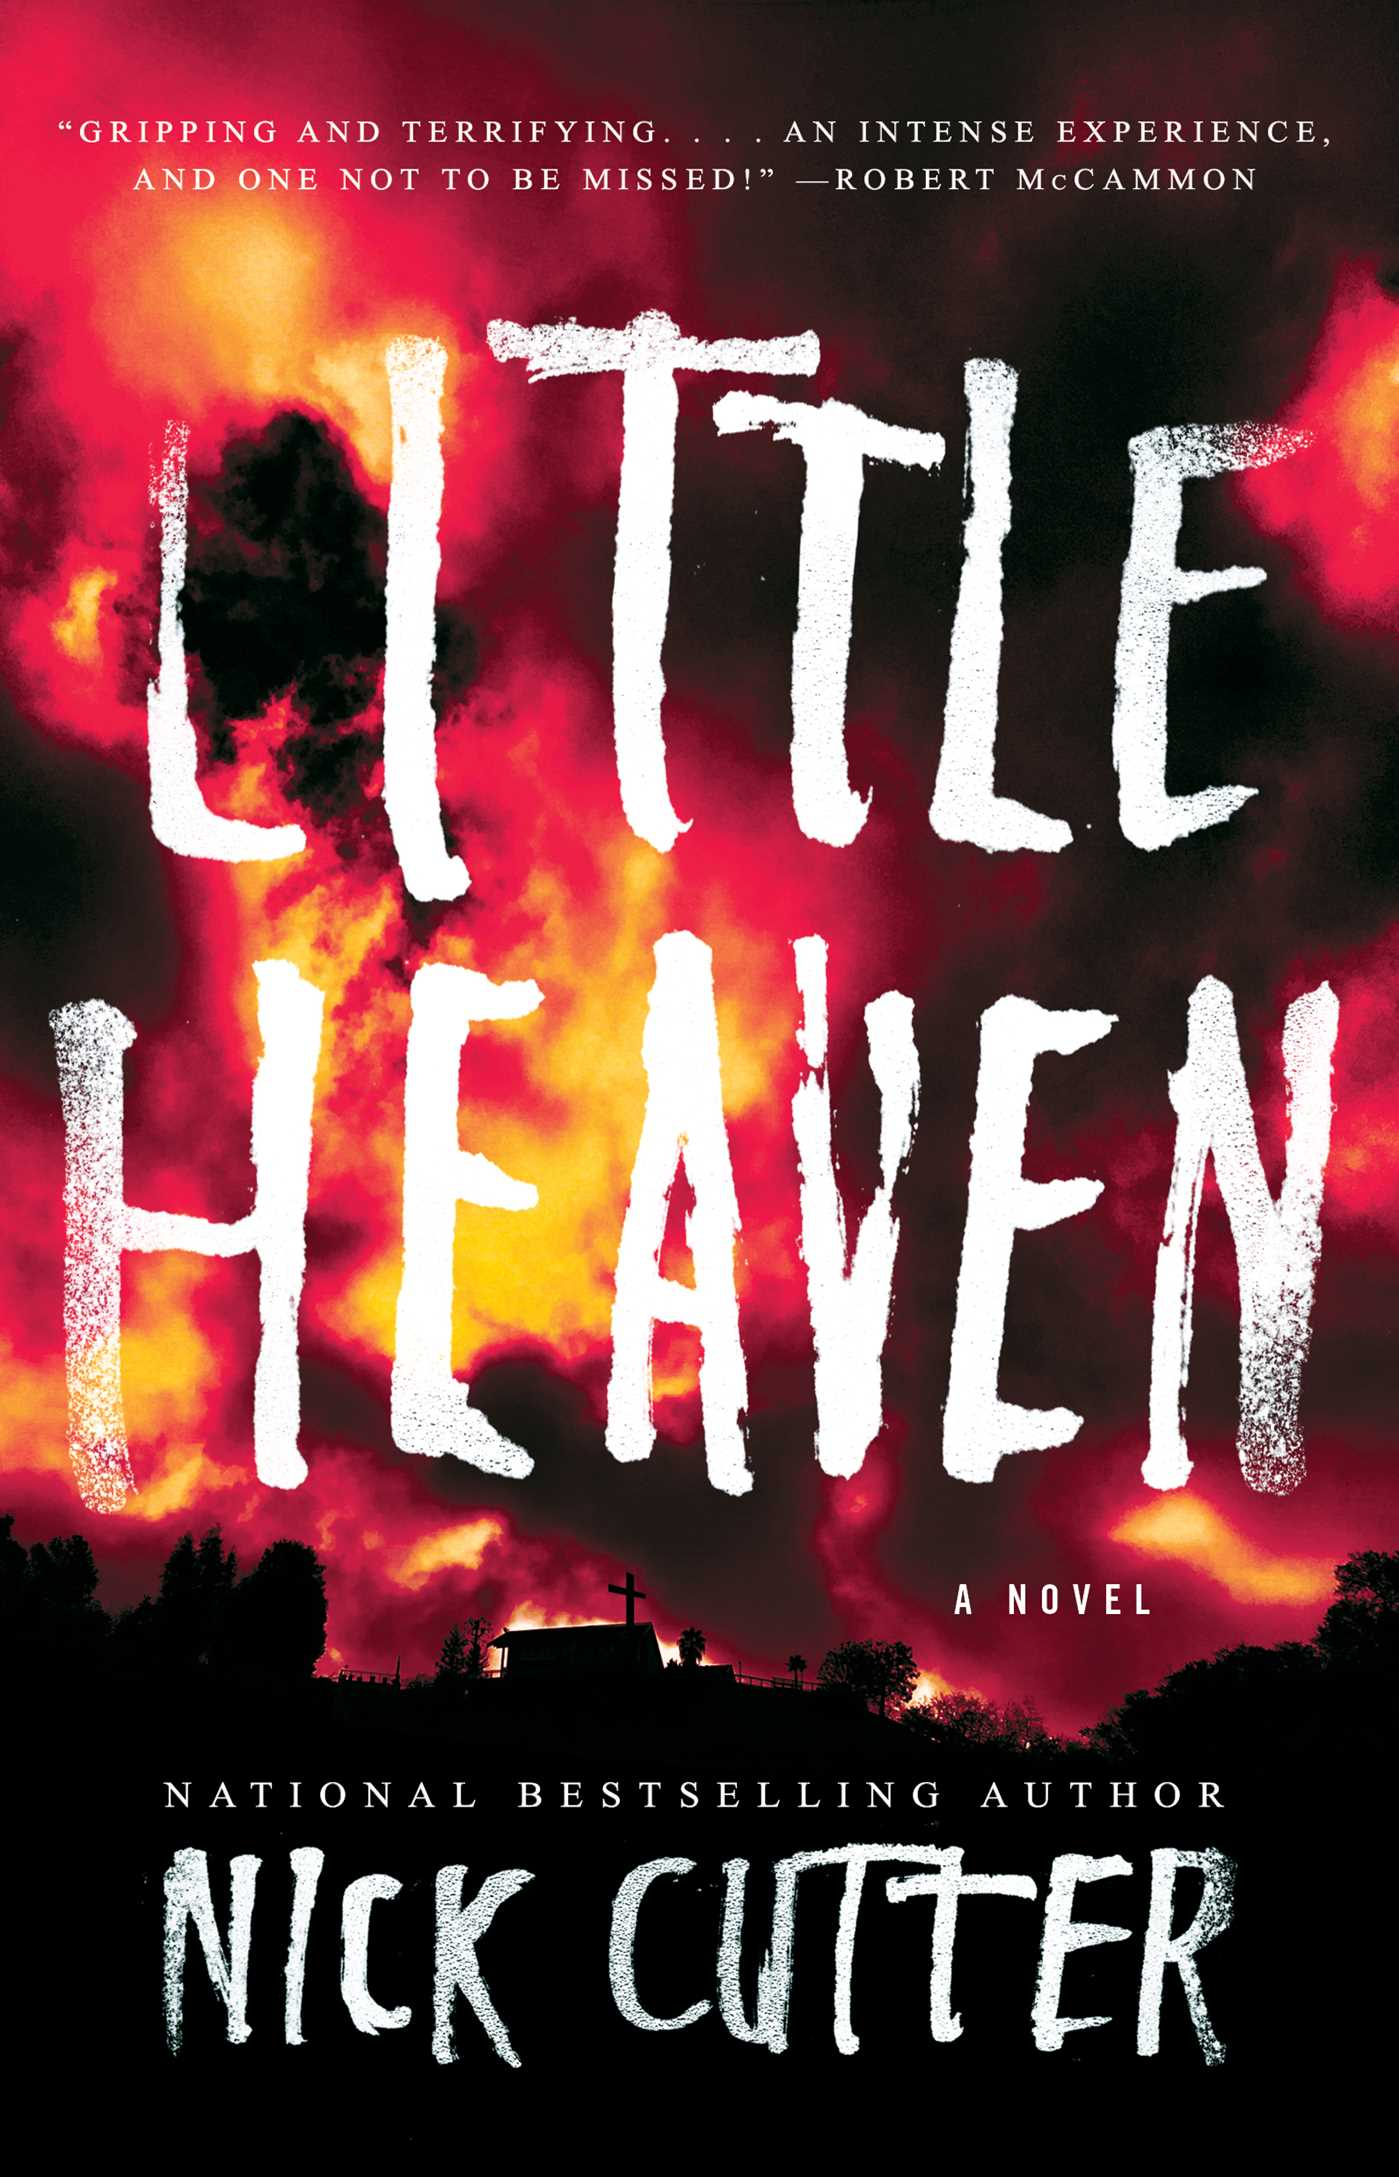 Little heaven 9781501104237 hr